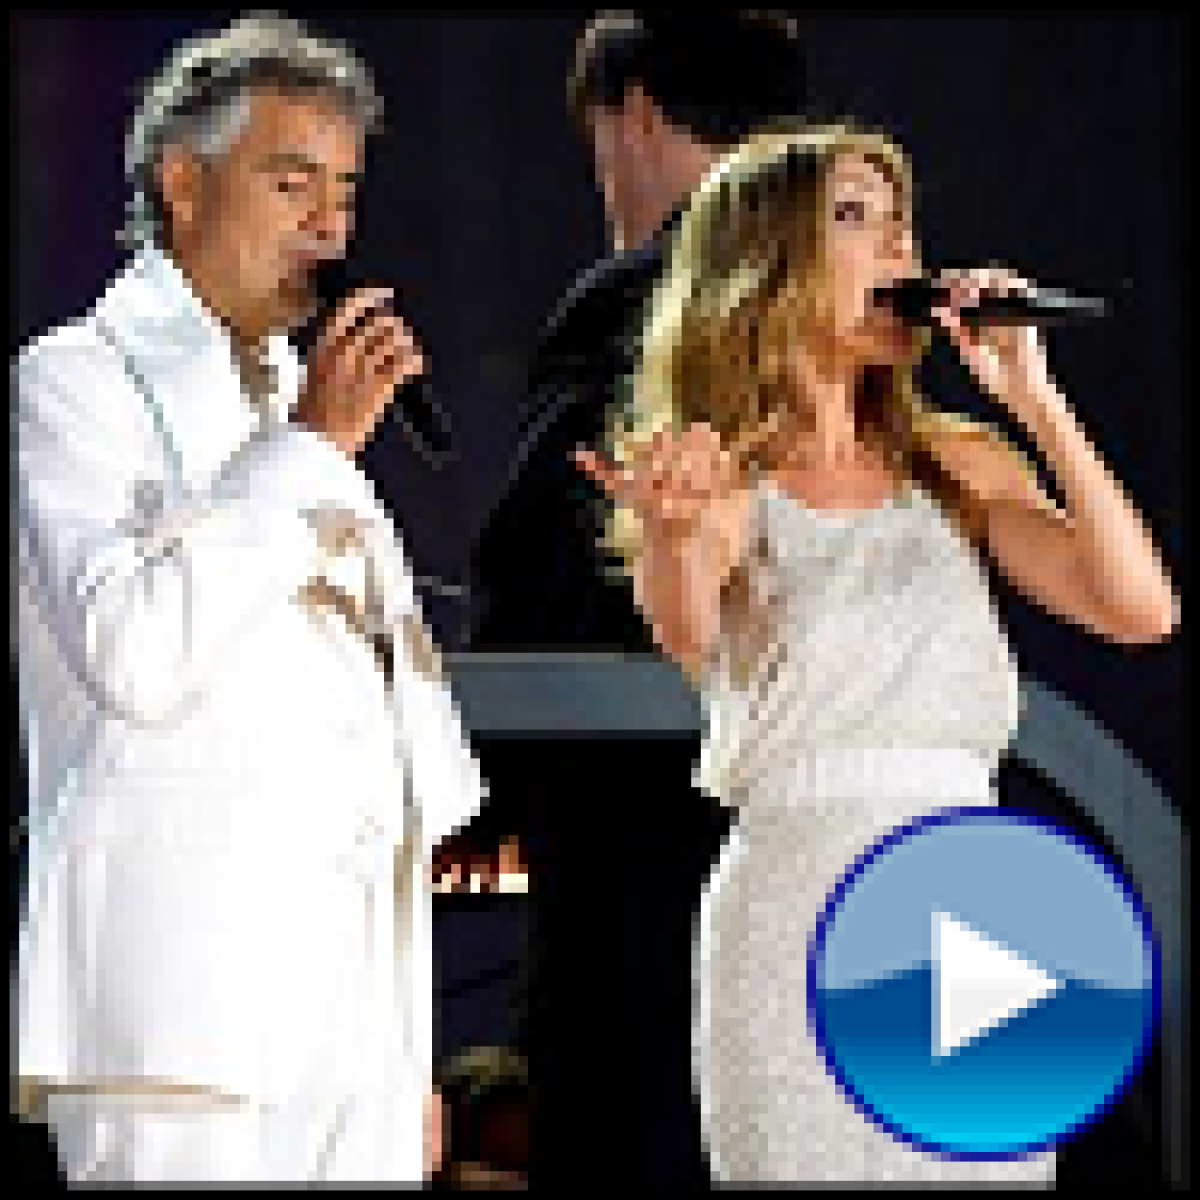 The Prayer By Celine Dion And Andrea Bocelli This Is Absolutely Heavenly A Must See Celine Dion Songs The Prayer Celine Dion Celine Dion